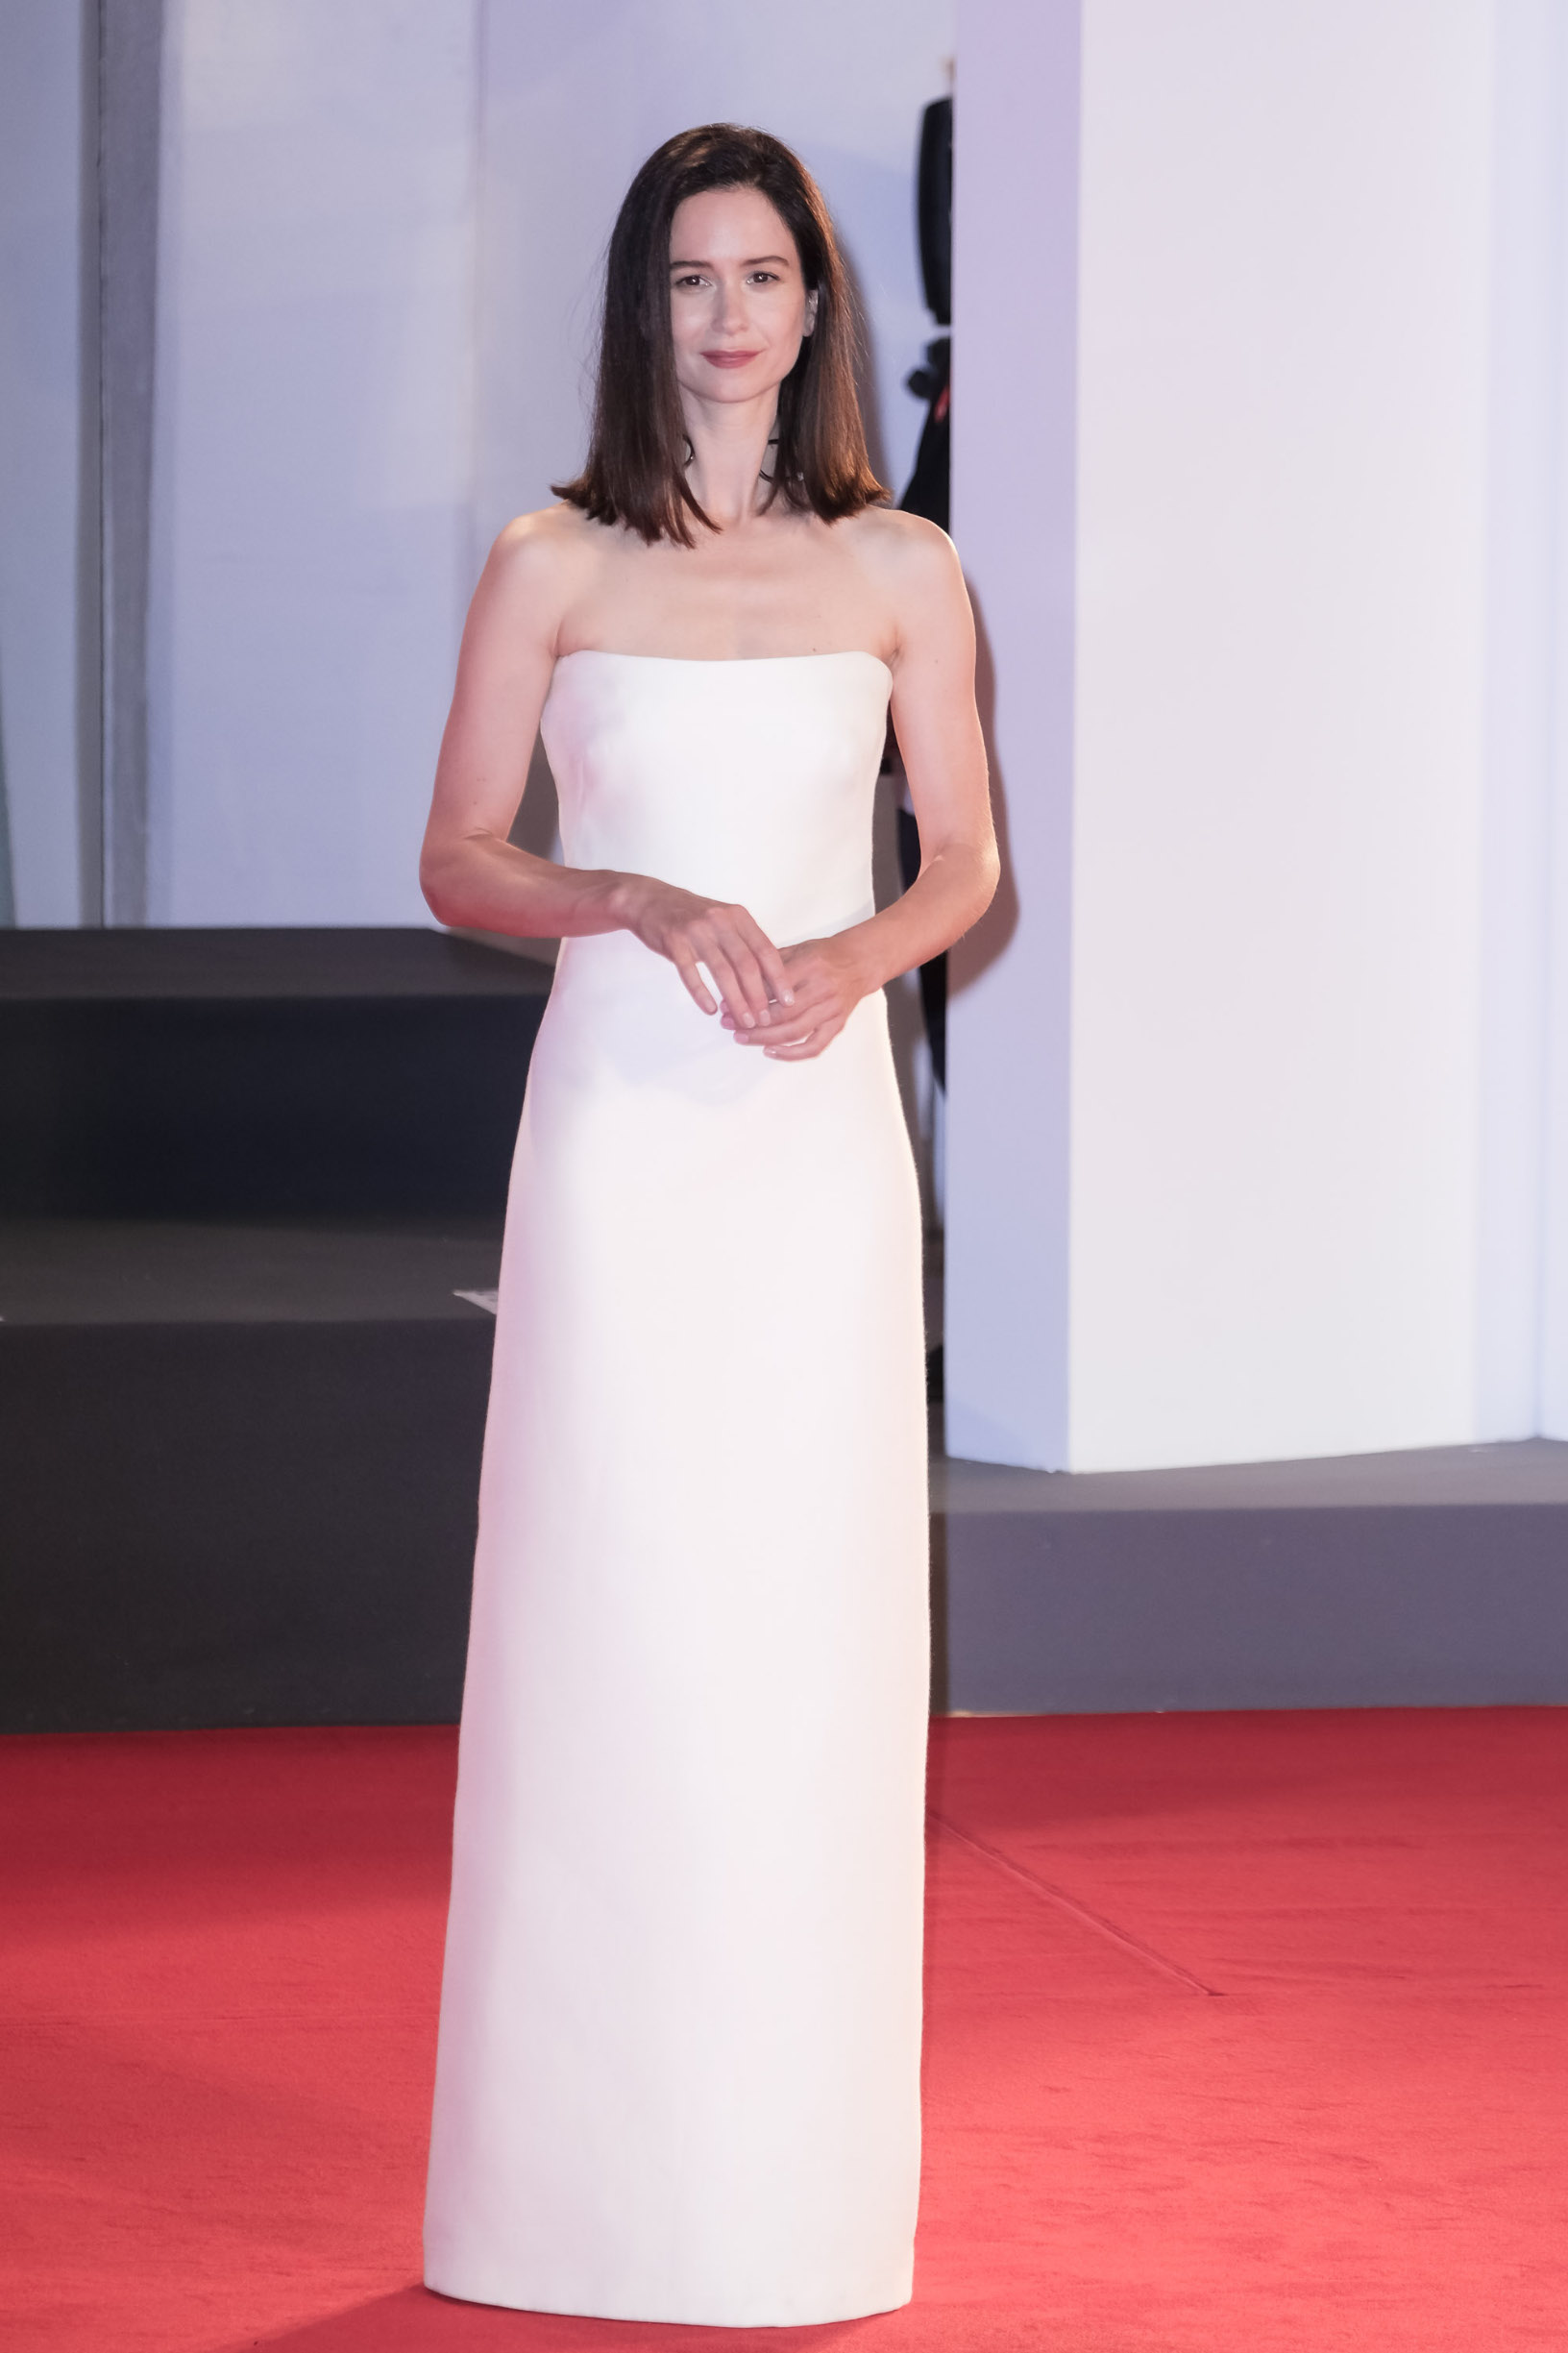 Katherine Waterston poses on the red carpet at Kino Prize during the 77th Venice International Film Festival ( La Biennale Di Venezia ) on Saturday 5 September 2020 at Palazzo del Cinema , Lido, Venice. . /LFI/Avalon. All usages must be credited Julie Edwards/LFI/Avalon.,Image: 556523159, License: Rights-managed, Restrictions: WORLD RIGHTS - Fee Payable Upon Reproduction - For queries contact Avalon.red - sales@avalon.red London: +44 (0) 20 7421 6000 Los Angeles: +1 (310) 822 0419 Berlin: +49 (0) 30 76 212 251, Model Release: no, Credit line: Julie Edwards/LFI/Avalon / Avalon Editorial / Profimedia